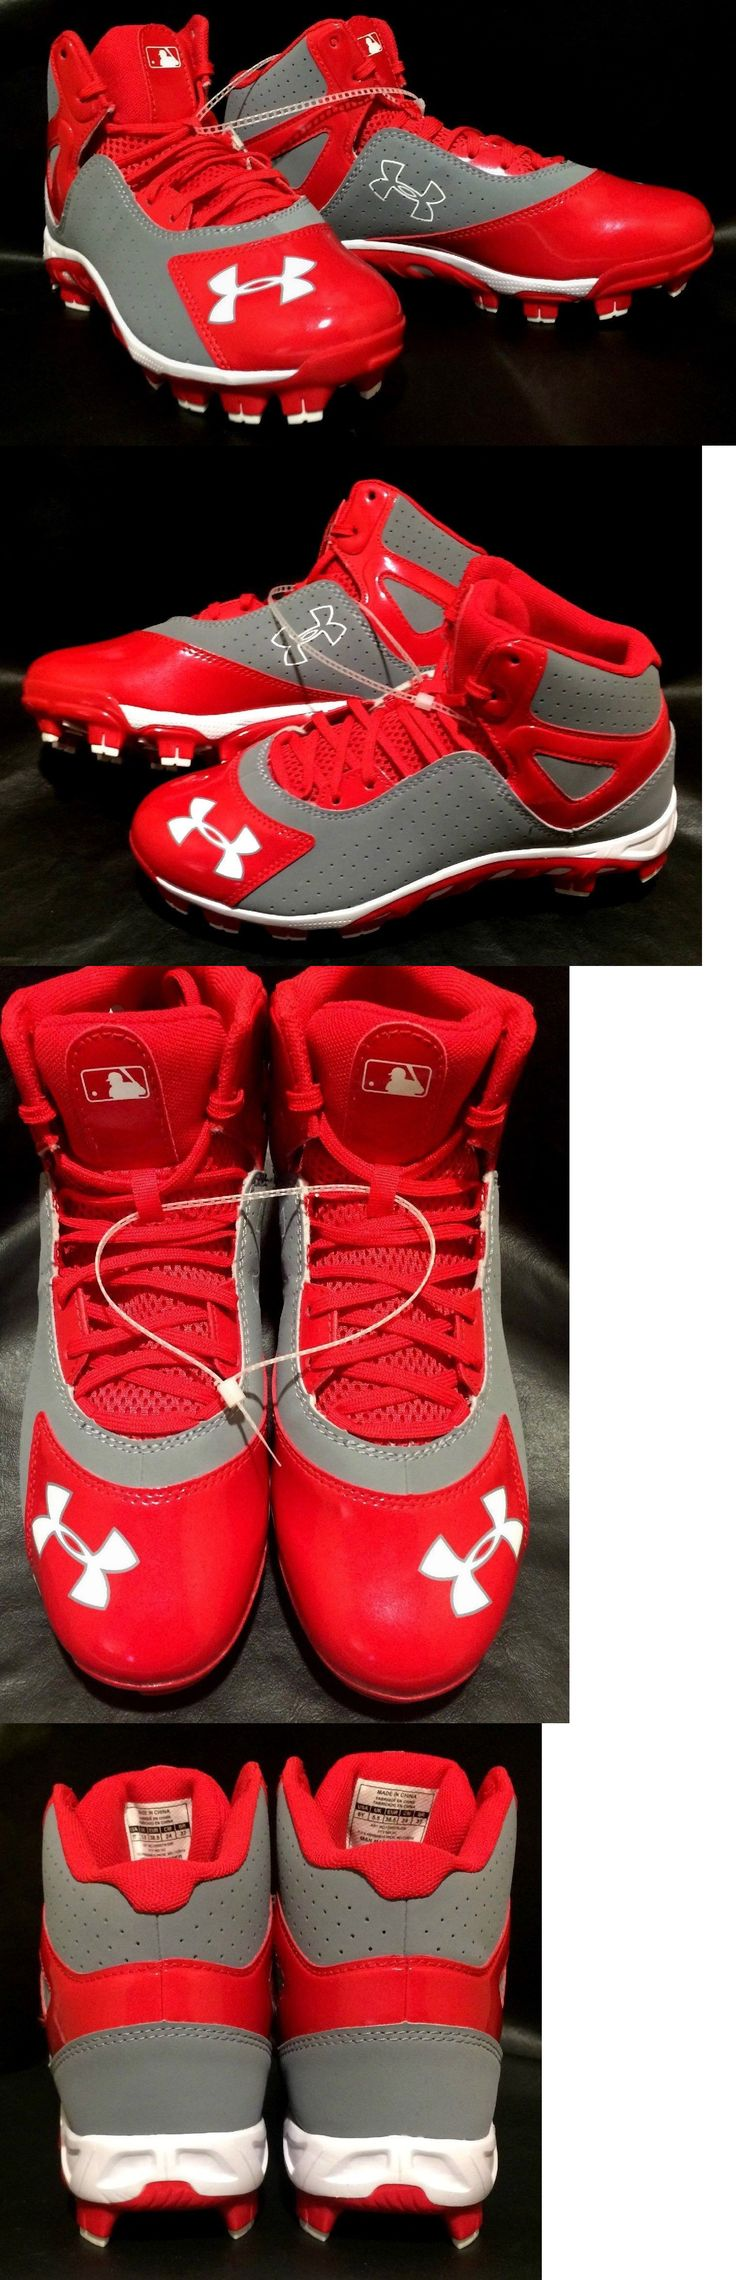 Youth 159061: Under Armour Youth Baseball Cleats 3/4 High Top Size 5.5Y Red/Gray BUY IT NOW ONLY: $42.99